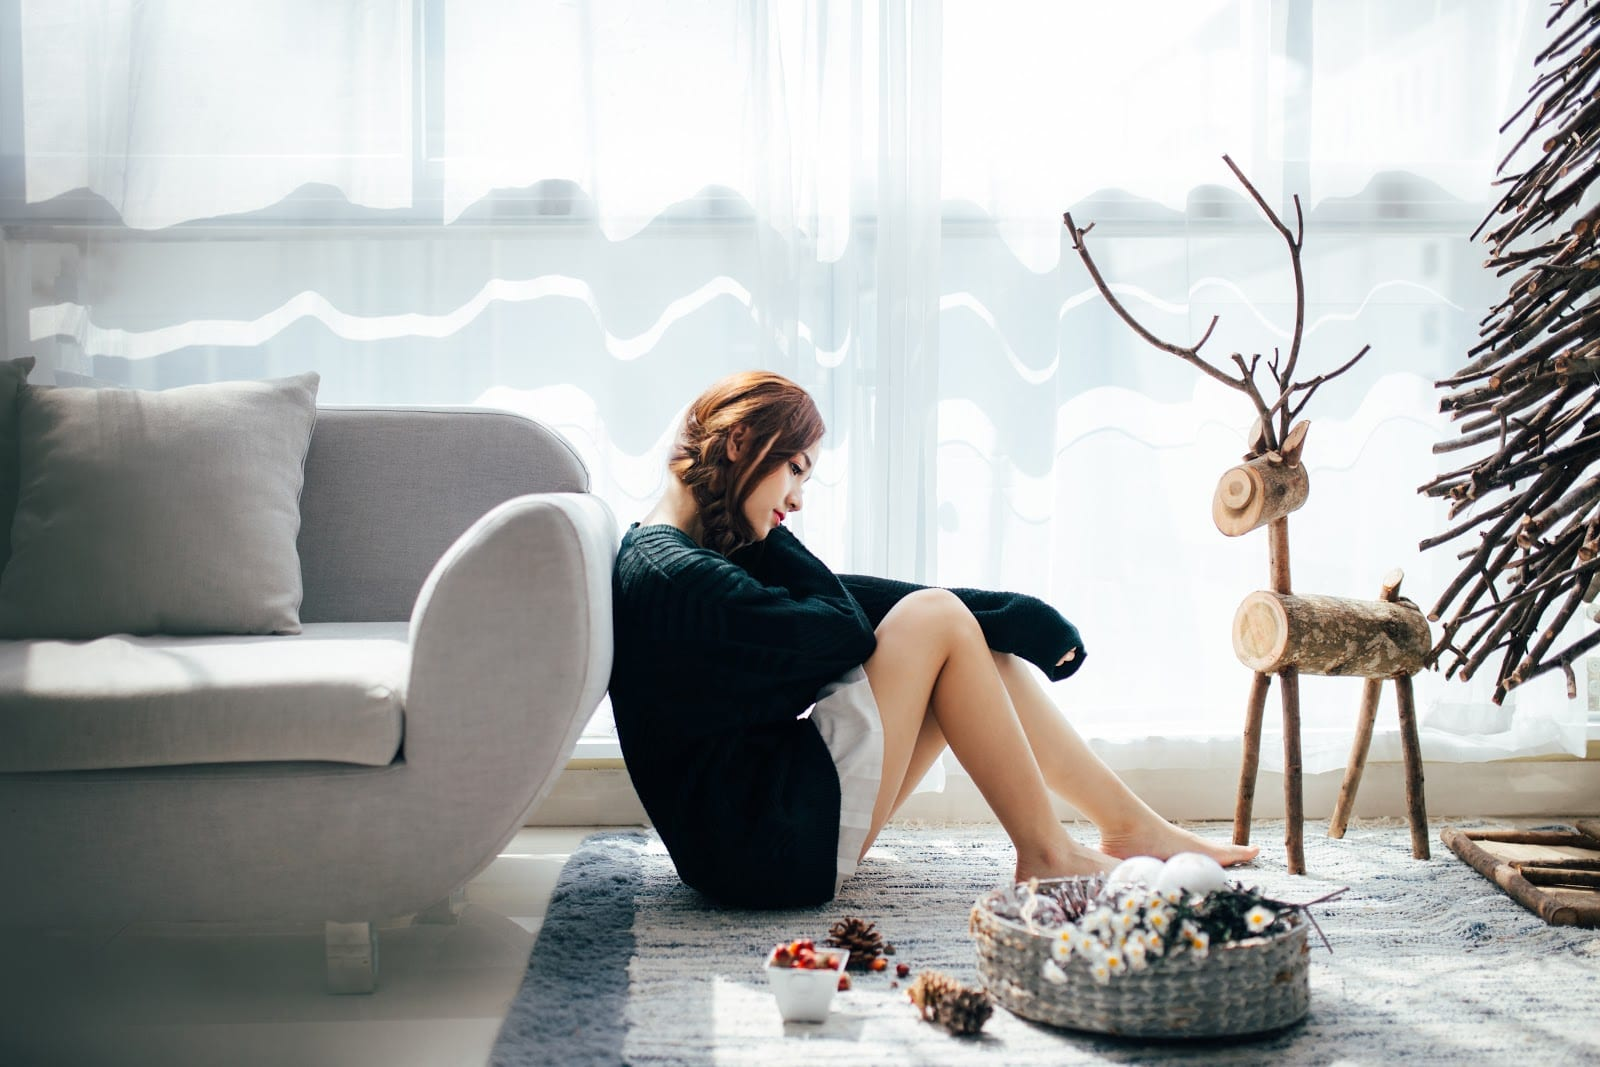 Why You Feel Depressed During the Holidays And How To Cope